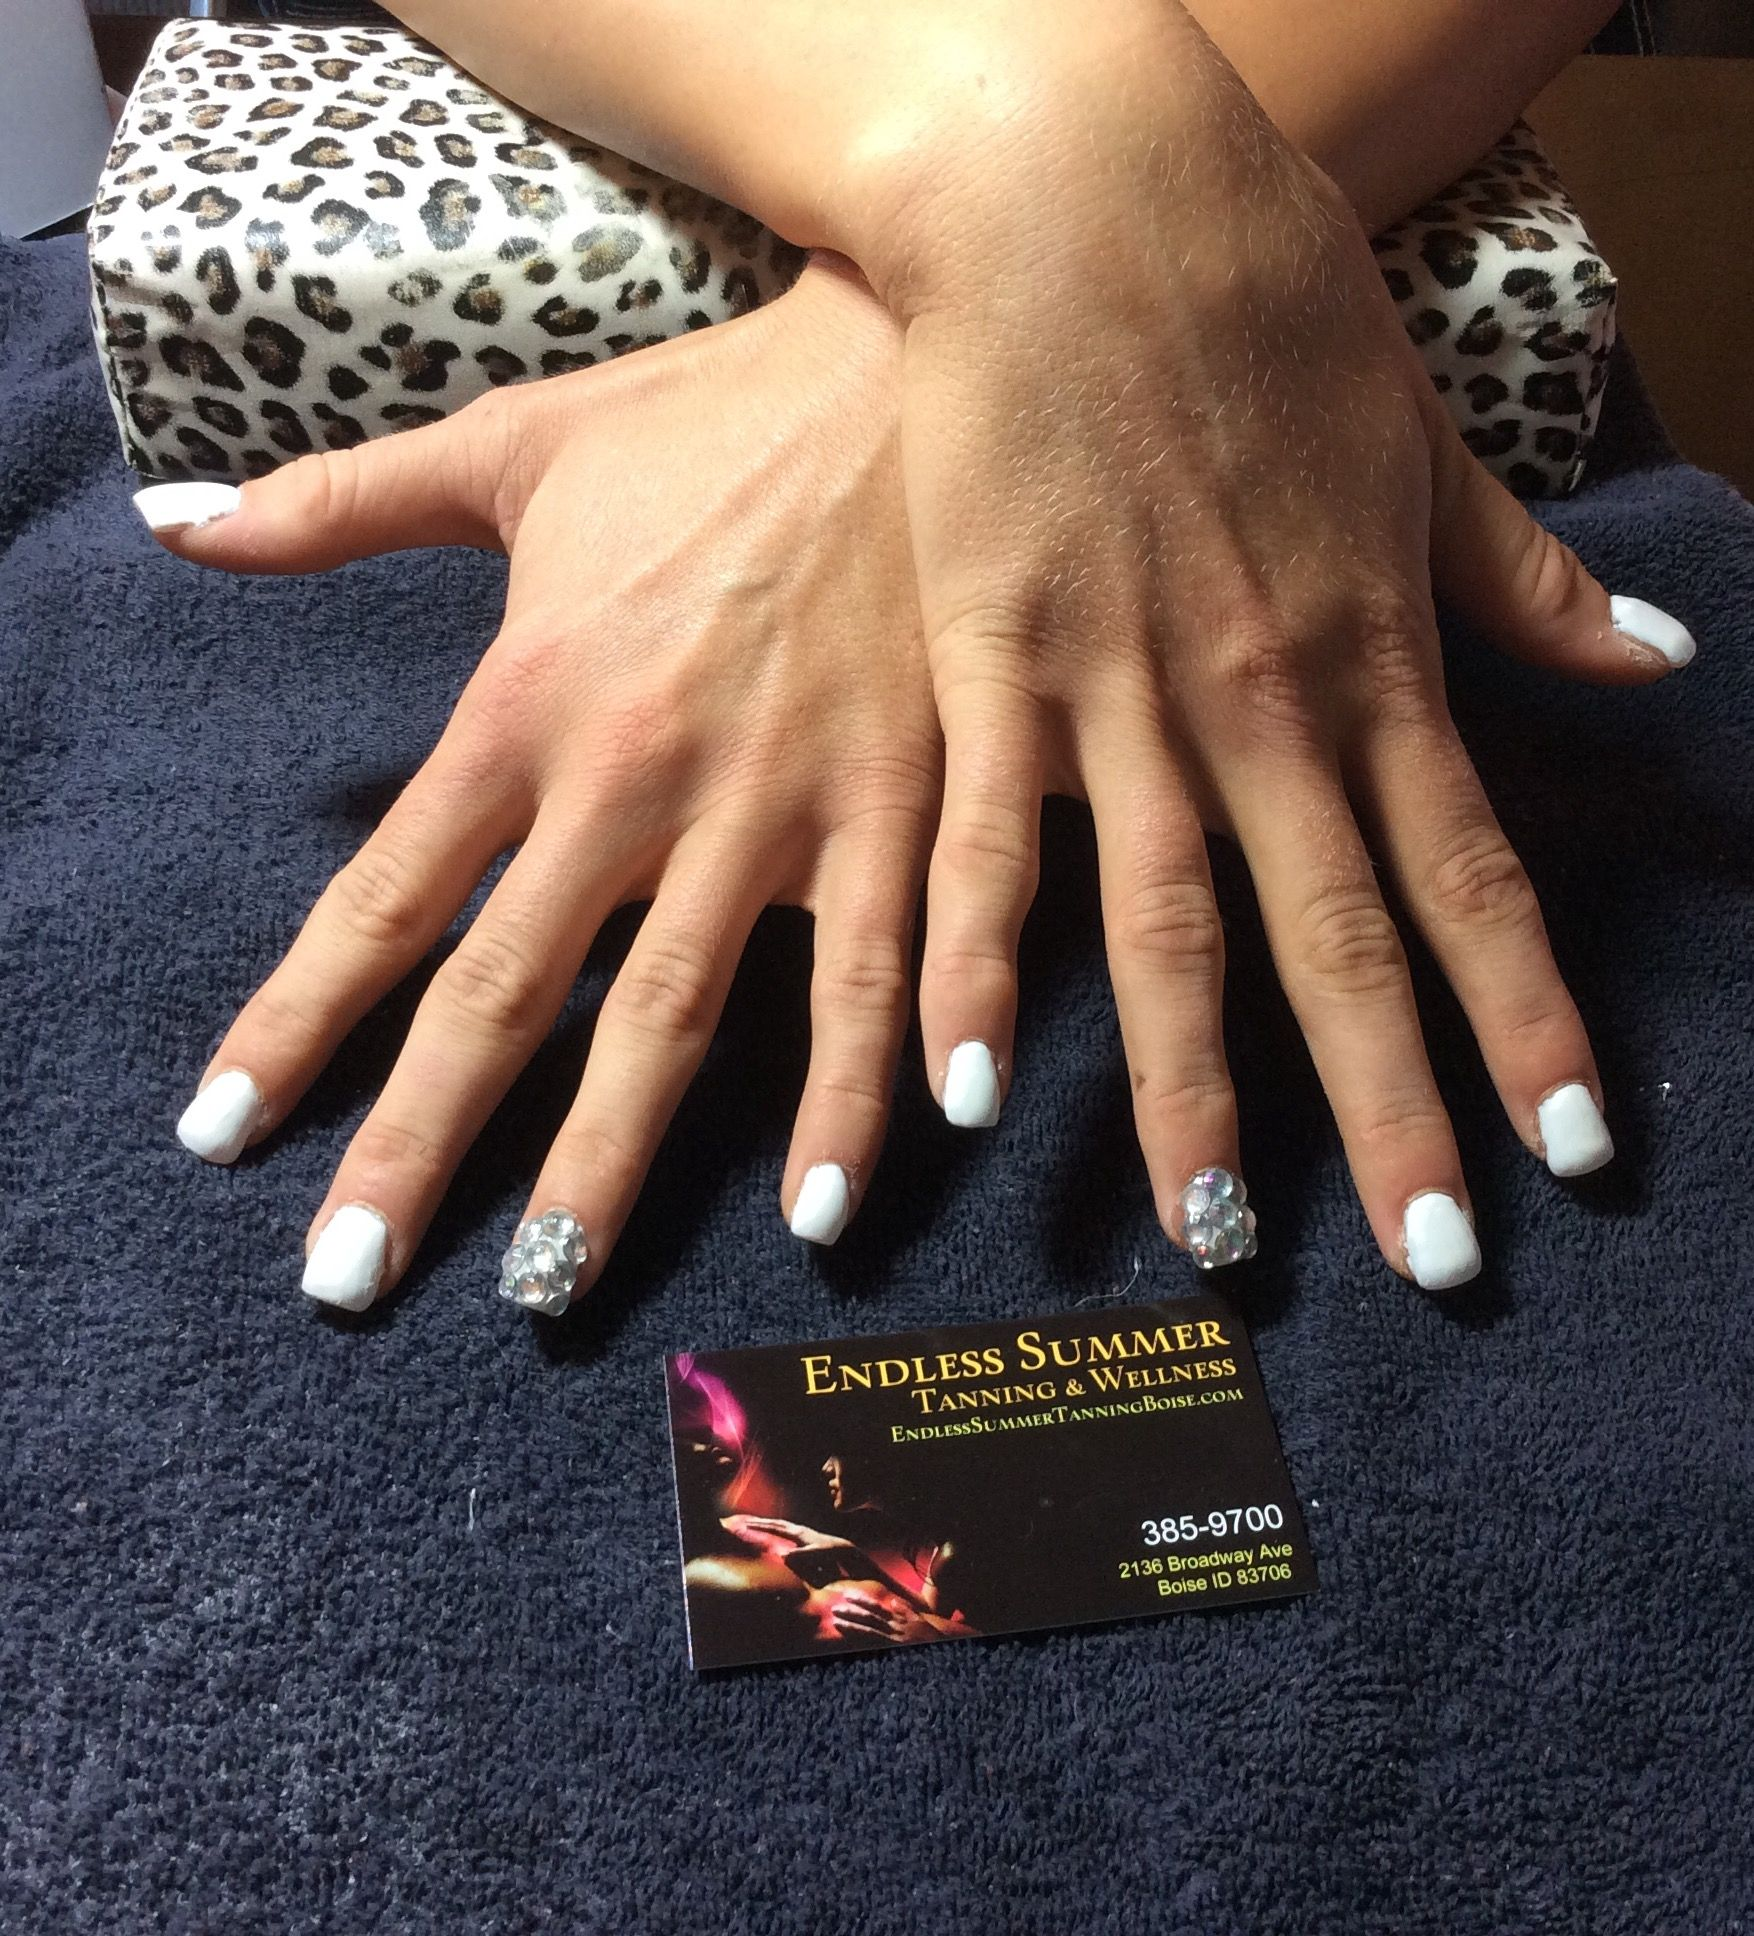 In August Get A Full Set Of Acrylic Gel Nails For Only 27 95 Plus